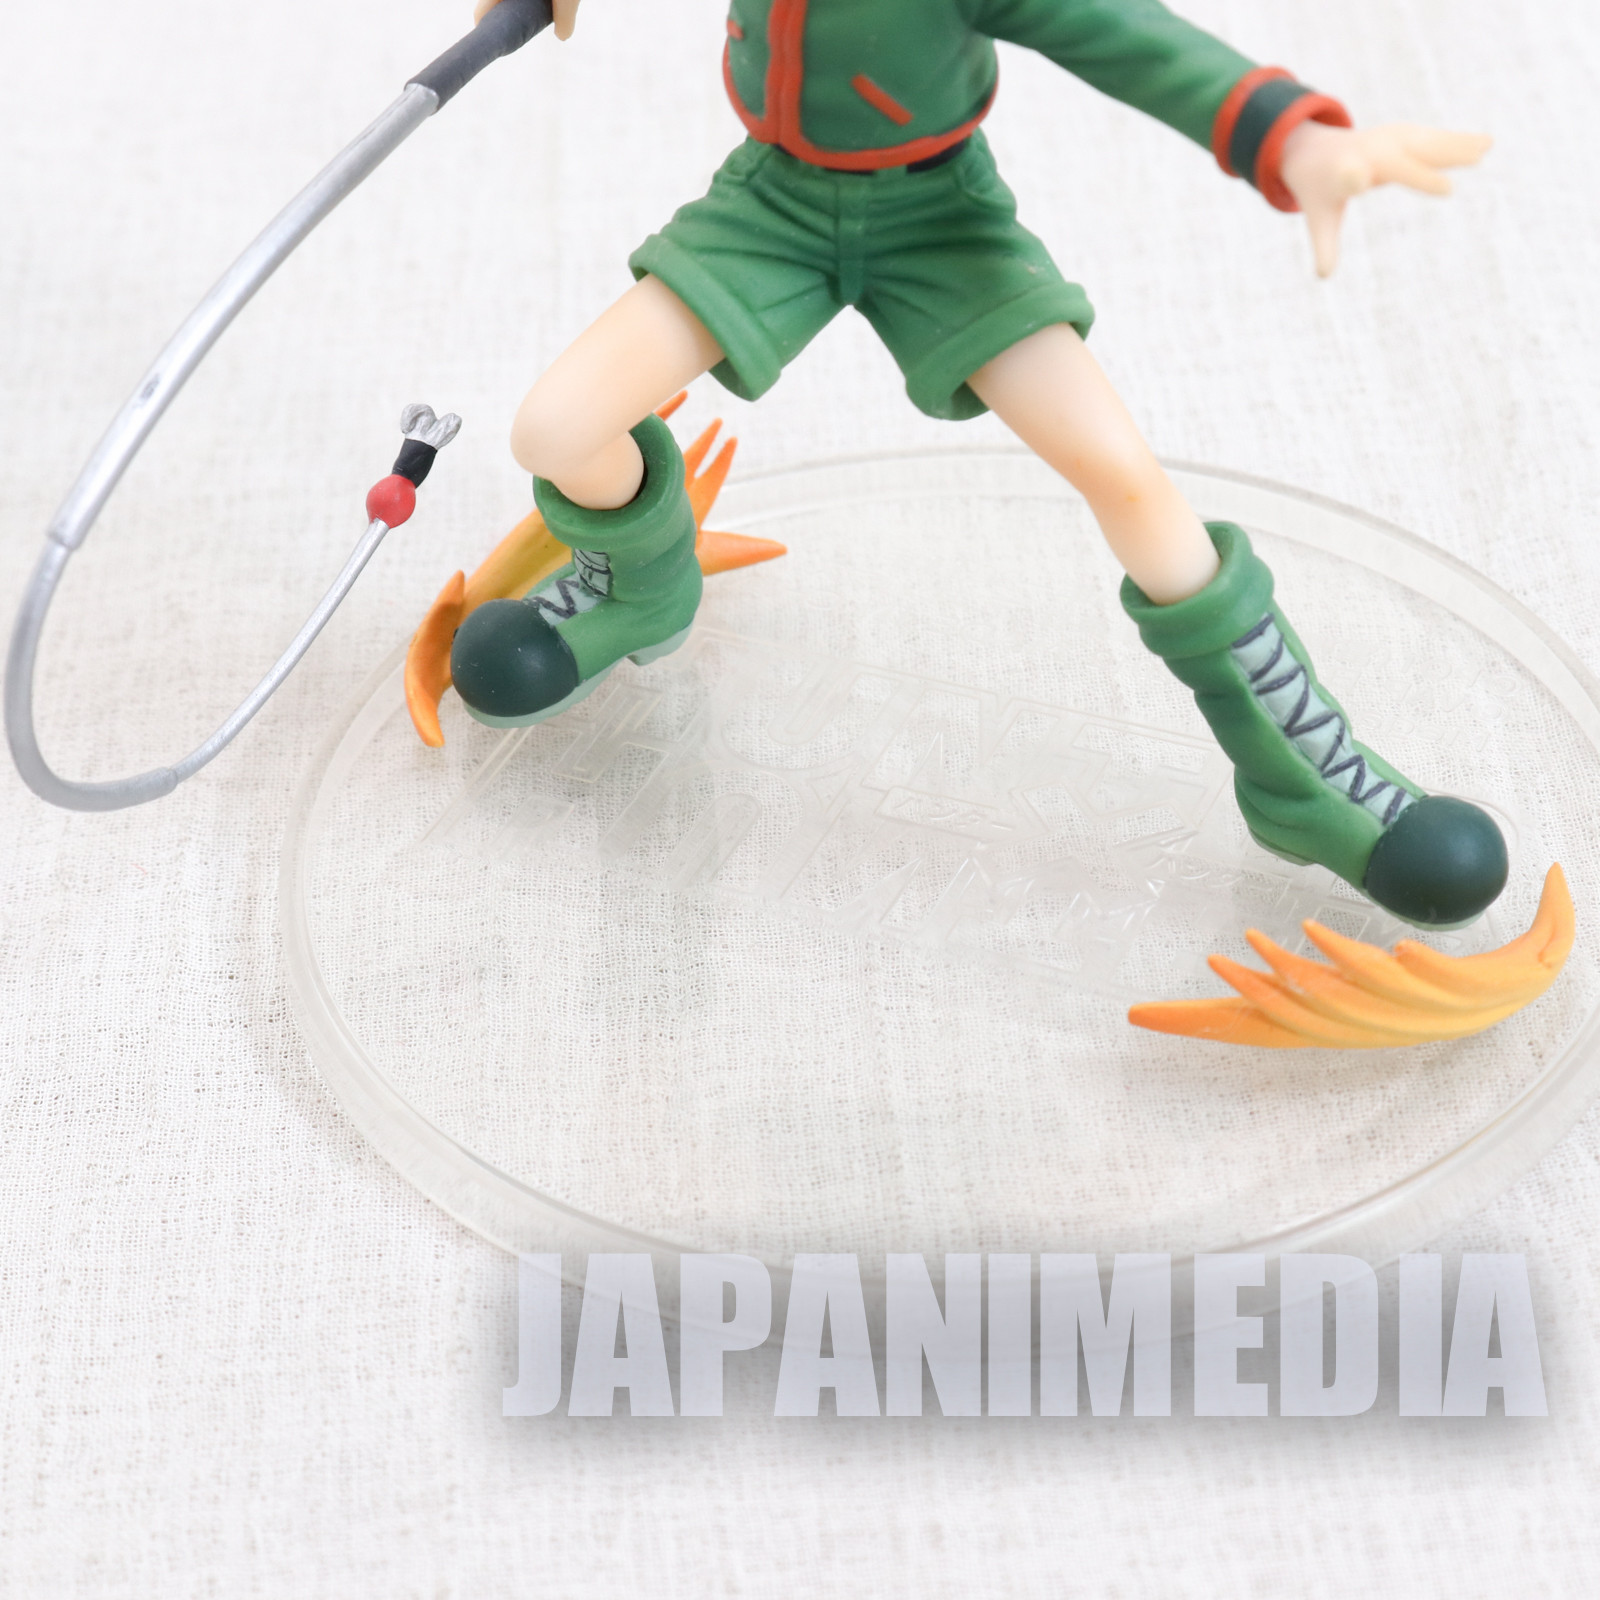 Hunter X Hunter Gon Freecss Diorama Collection Figure Megahouse Japan Anime Japanimedia Store One player controls black pieces and one player controls white pieces. hunter x hunter gon freecss diorama collection figure megahouse japan anime